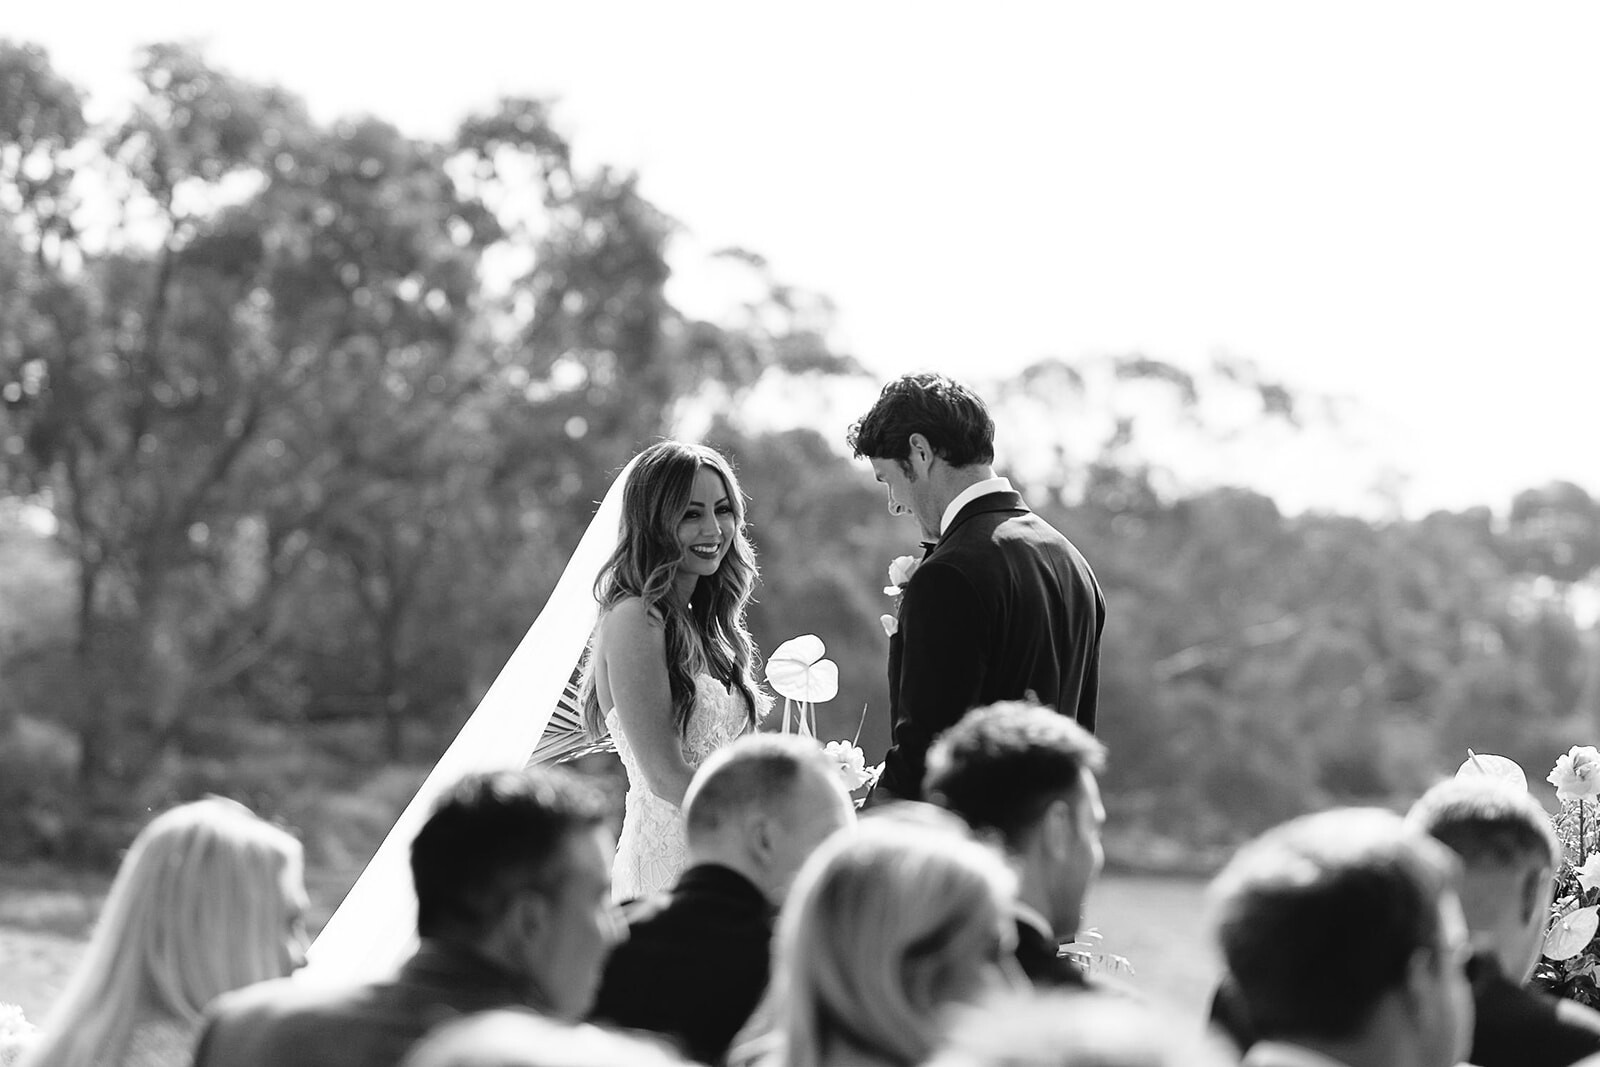 What settings should I use for wedding photography?